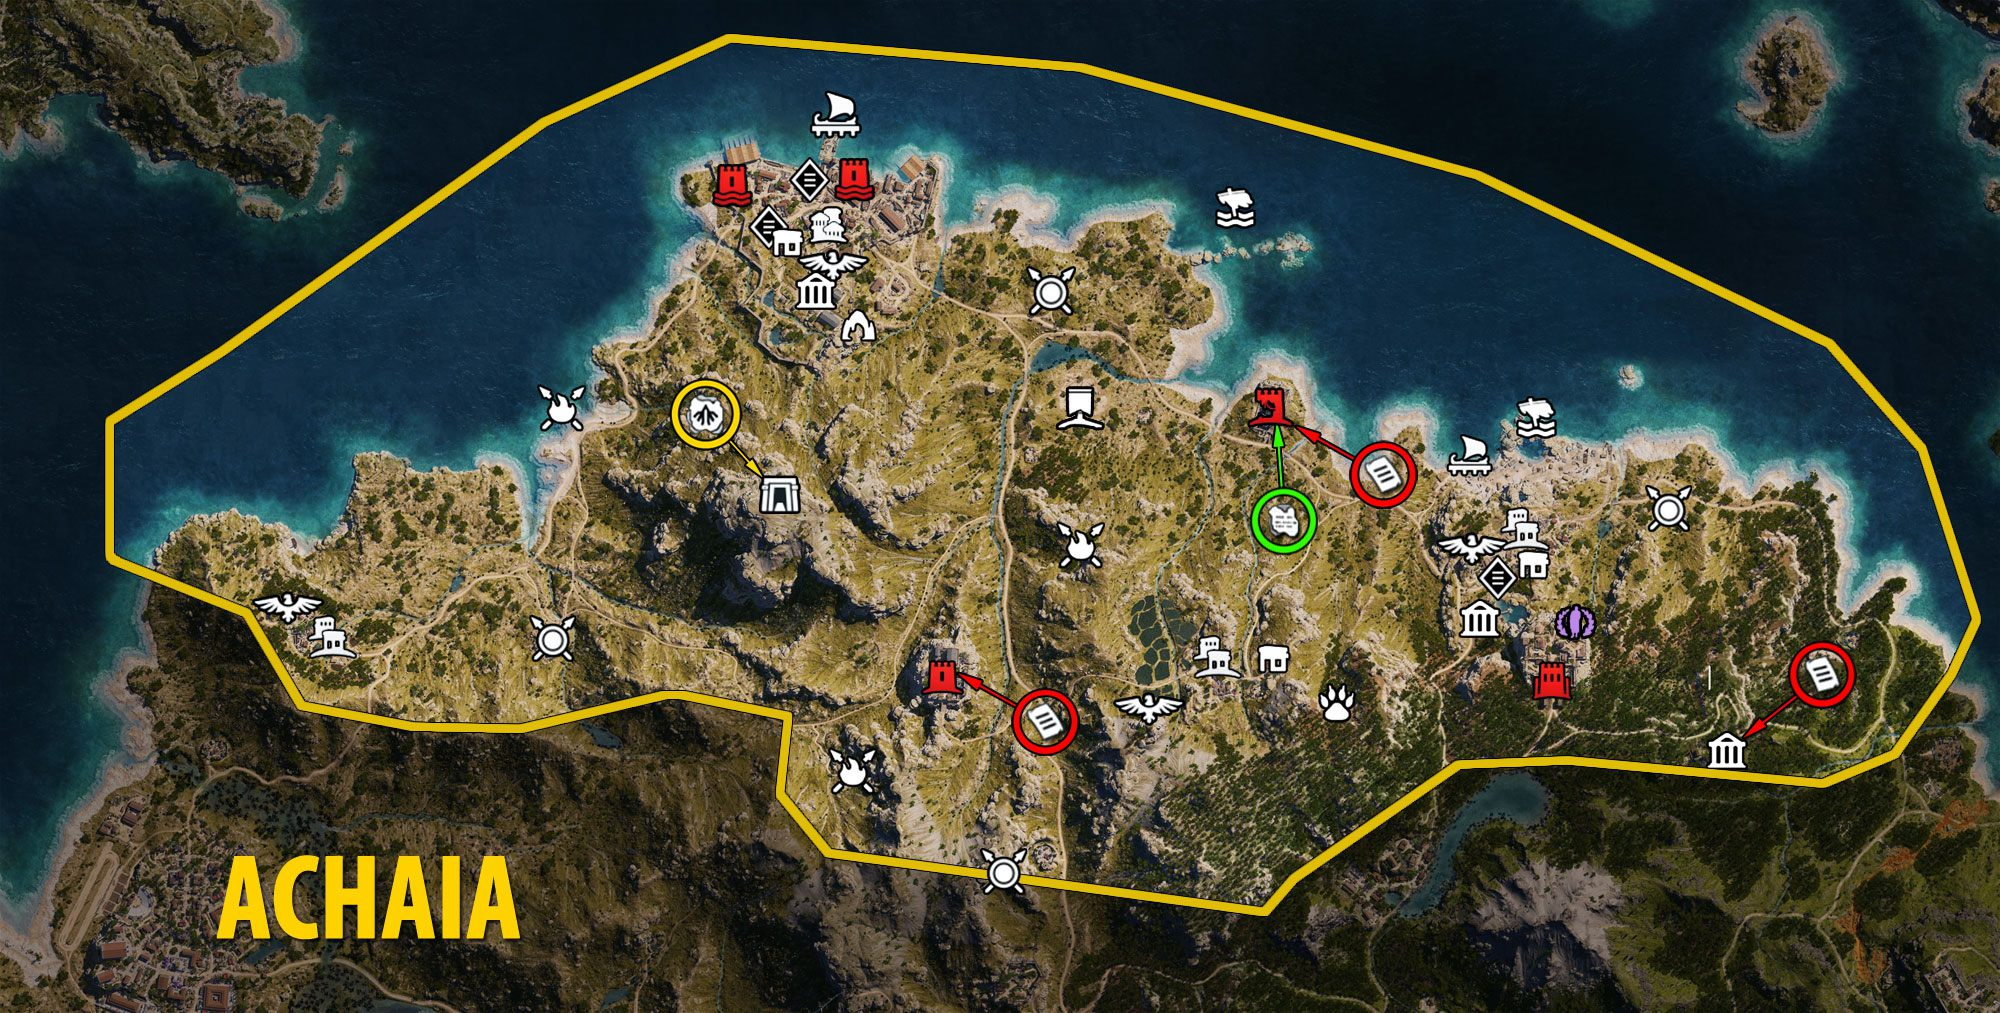 Achaia Map - Assassin's Creed Odyssey